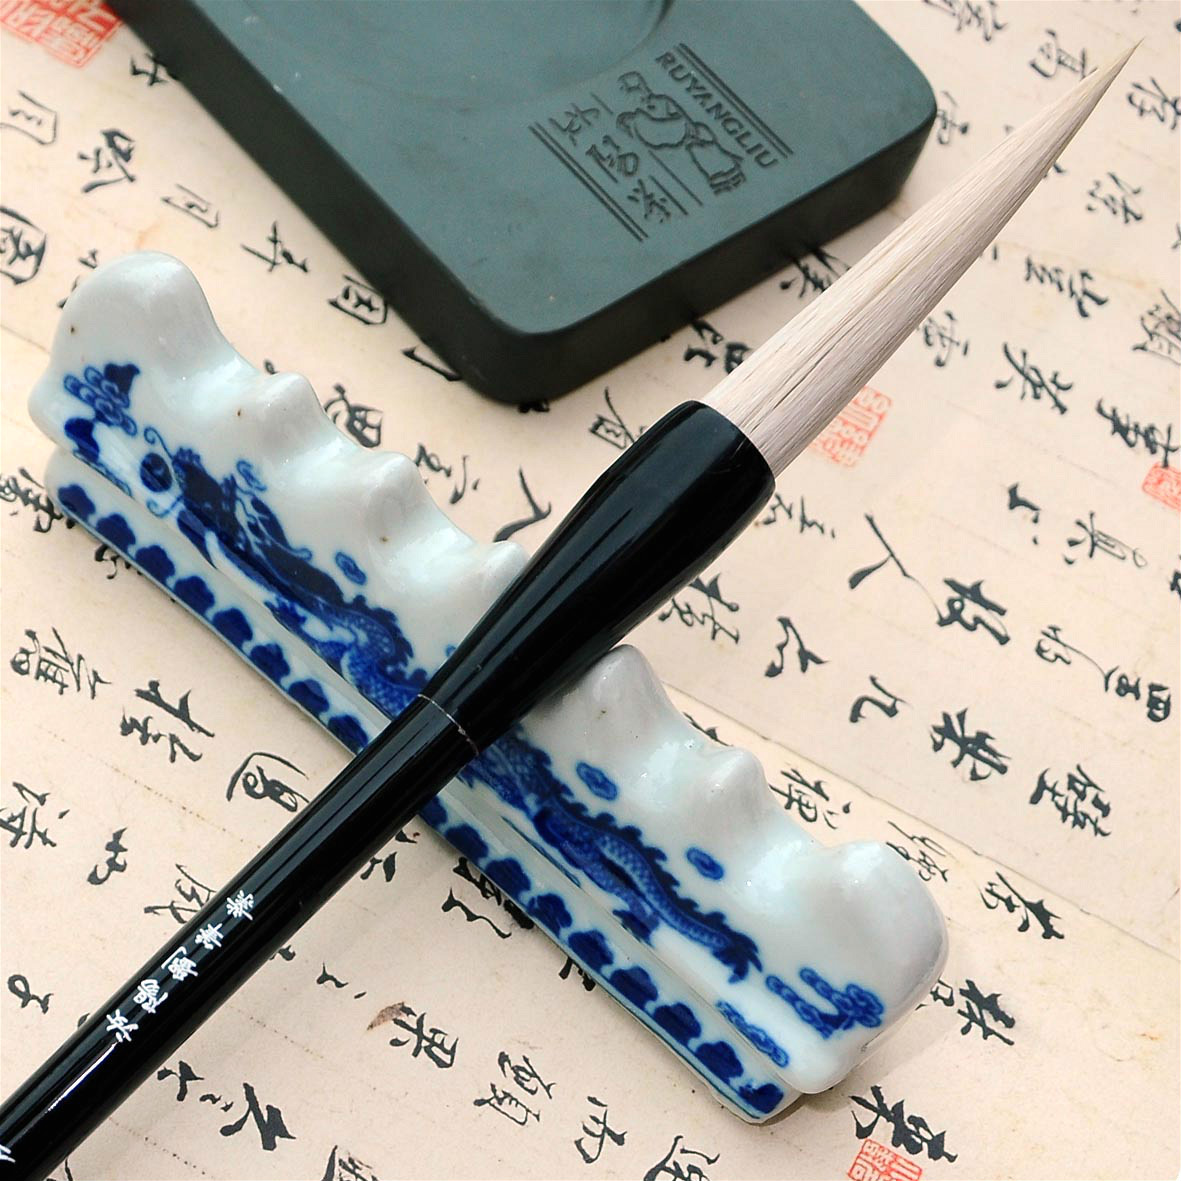 High quality RuyangLiu woolen writing brush Chinese time-honored brand cursive calligraphy script calligraphy pen